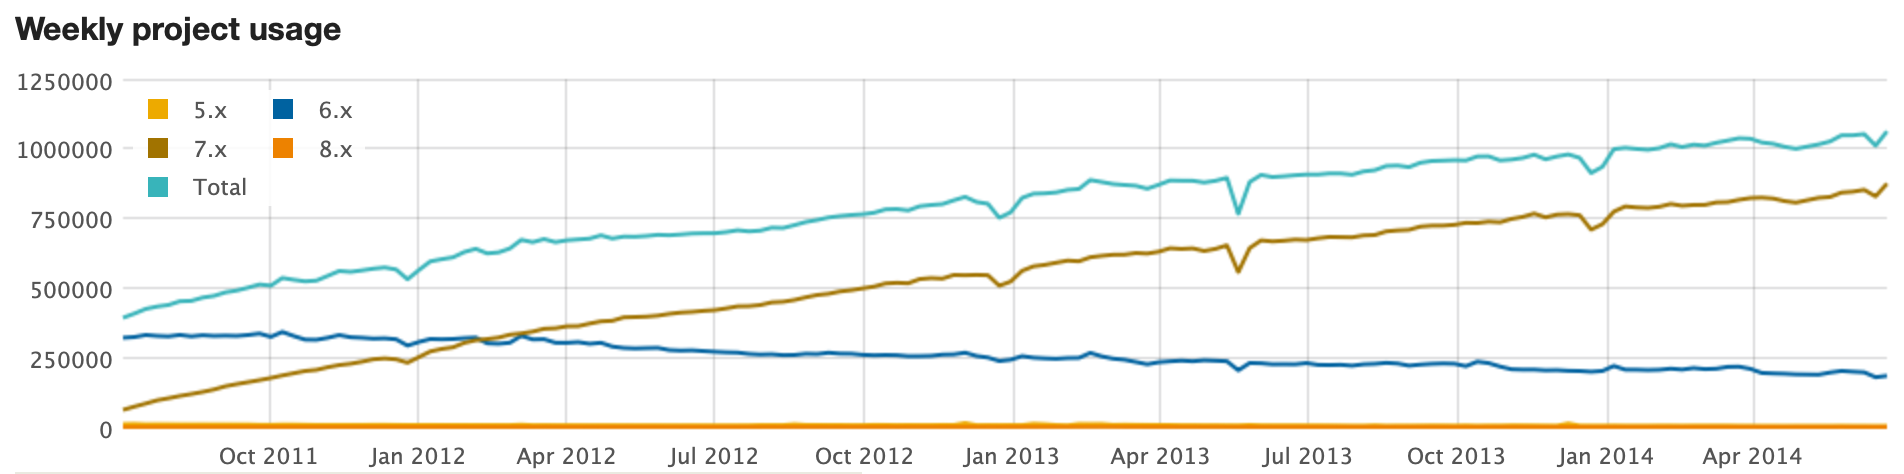 Usage Statistics for Drupal Core from 2010 to 2014